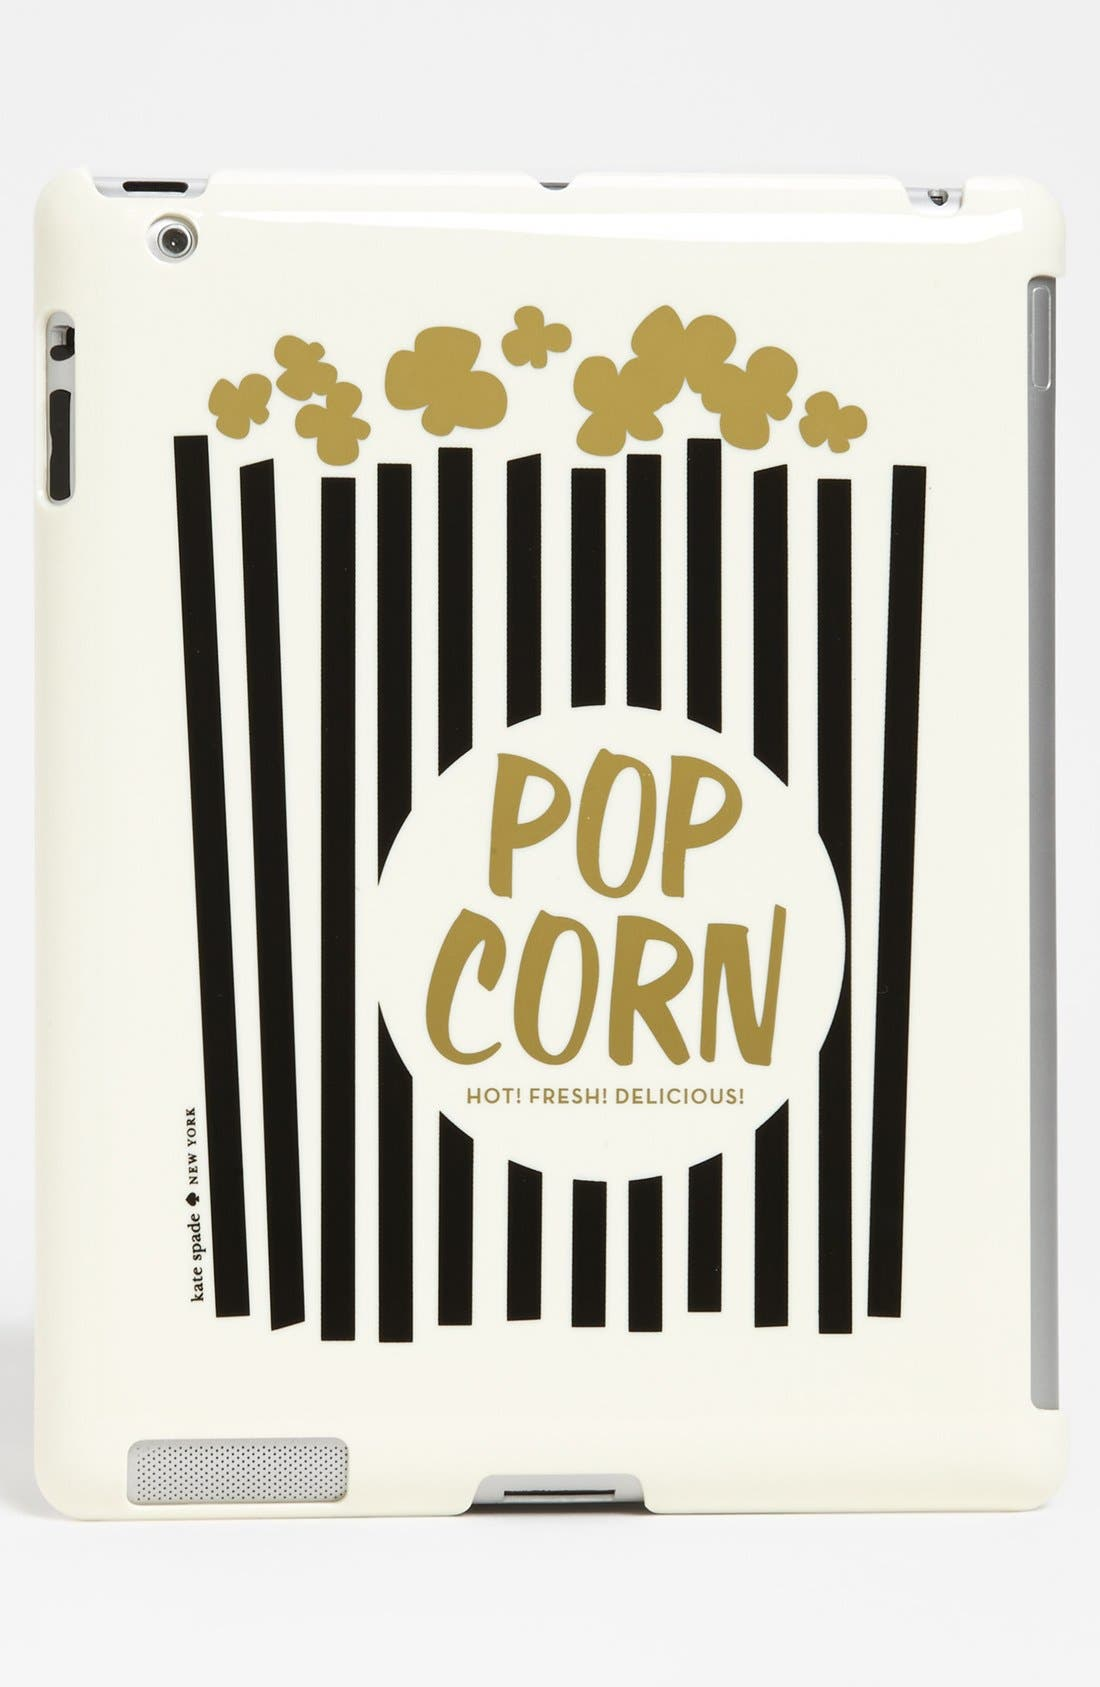 Alternate Image 1 Selected - kate spade new york 'popcorn' iPad case